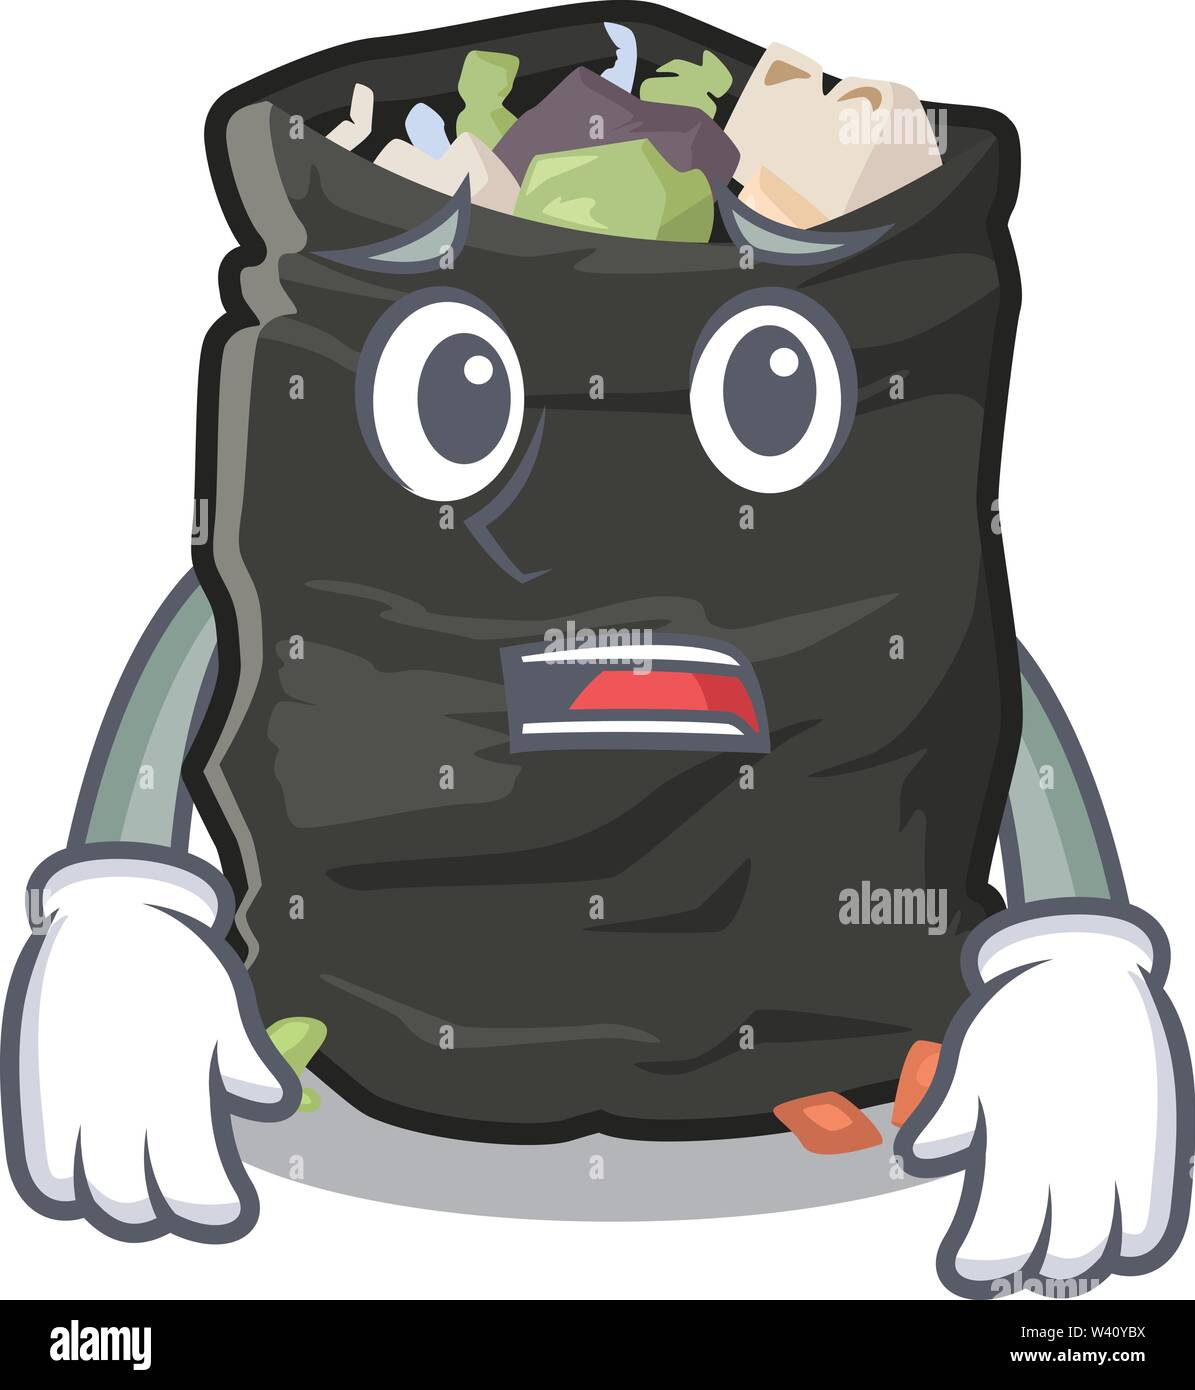 Afraid cartoon garbage bag next to table vector illustration - Stock Image